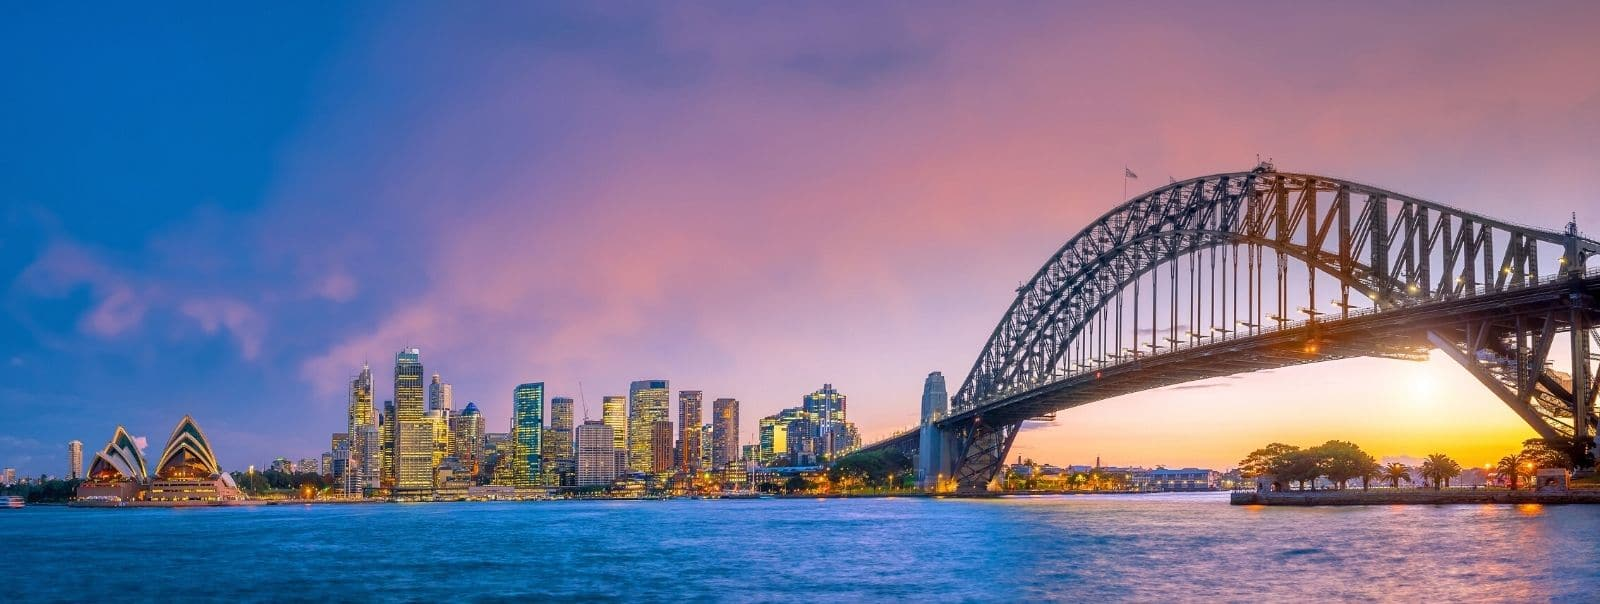 Sydney Harbour and Must See Sydney Landmarks including Opera House, city and Harbour Bridge